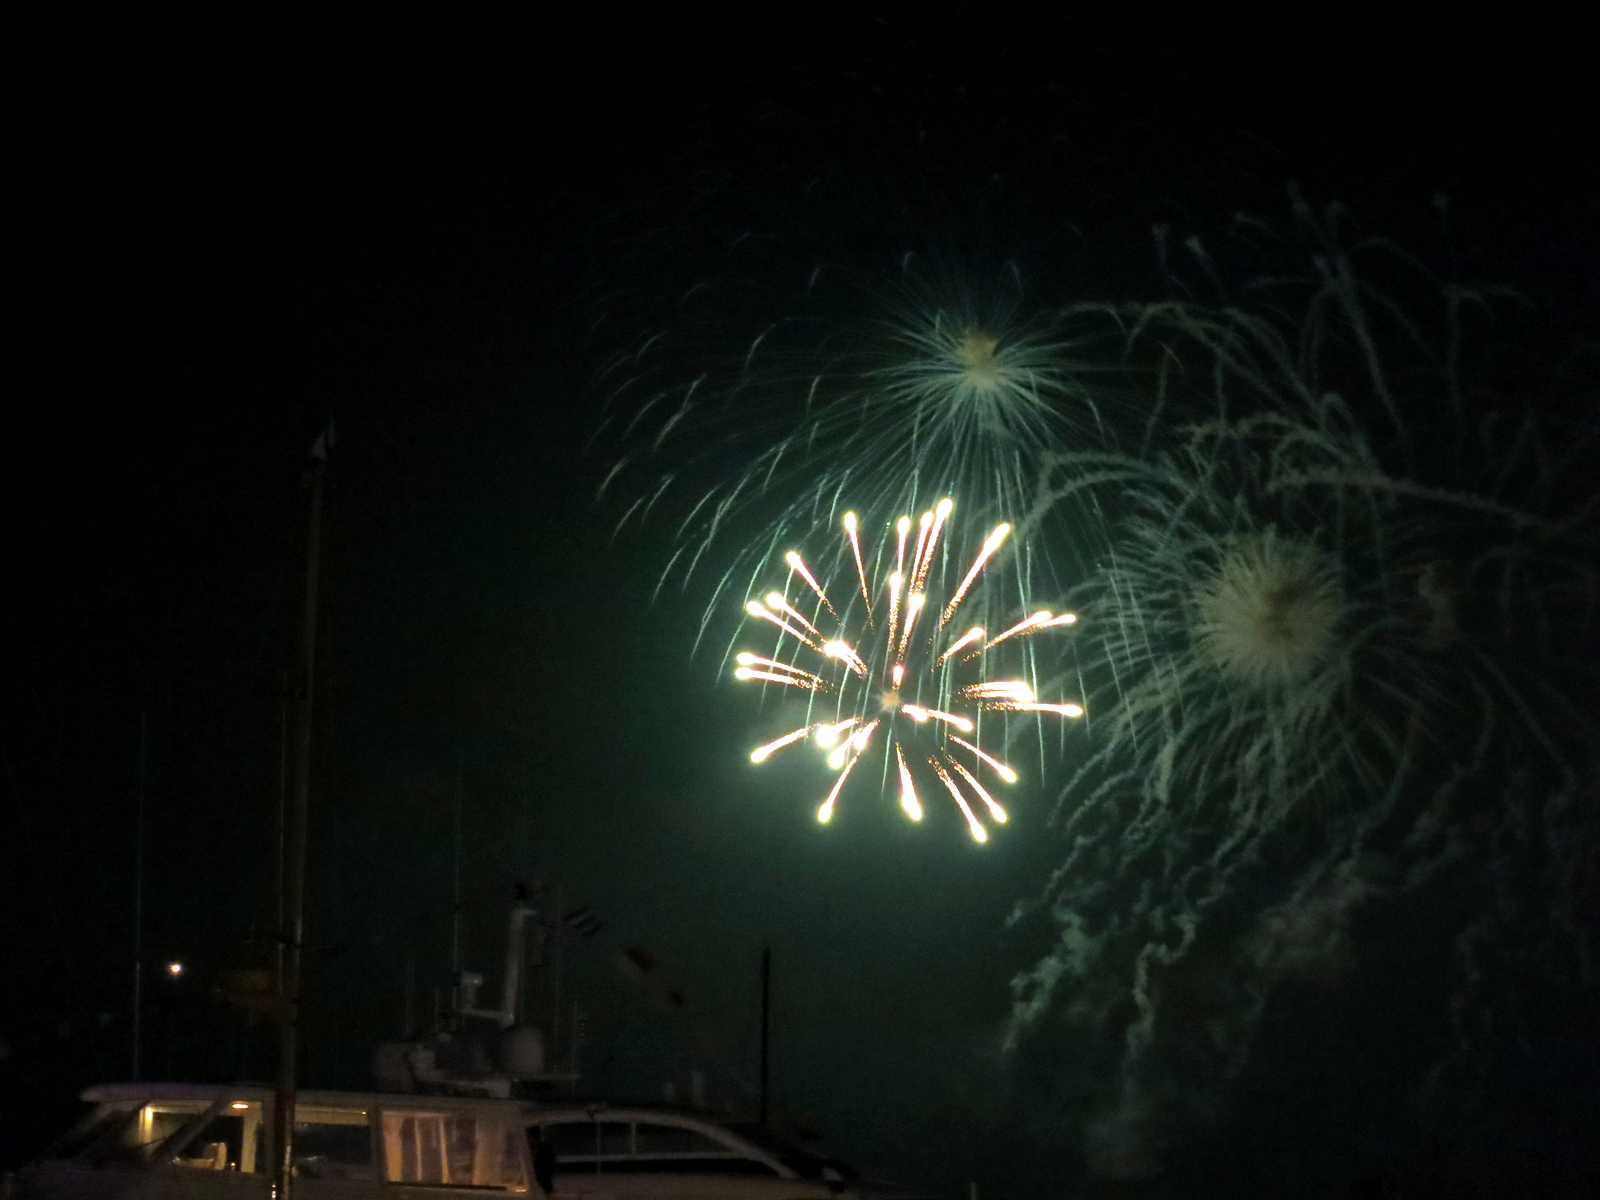 ROCKET'S RED GLARE OVER NEWPORT HARBOR - live. travel. adventure. bless. | Bright firework exploding over Newport Harbor during the 4th of July fireworks display in Newport, RI. Happy 4th of July!